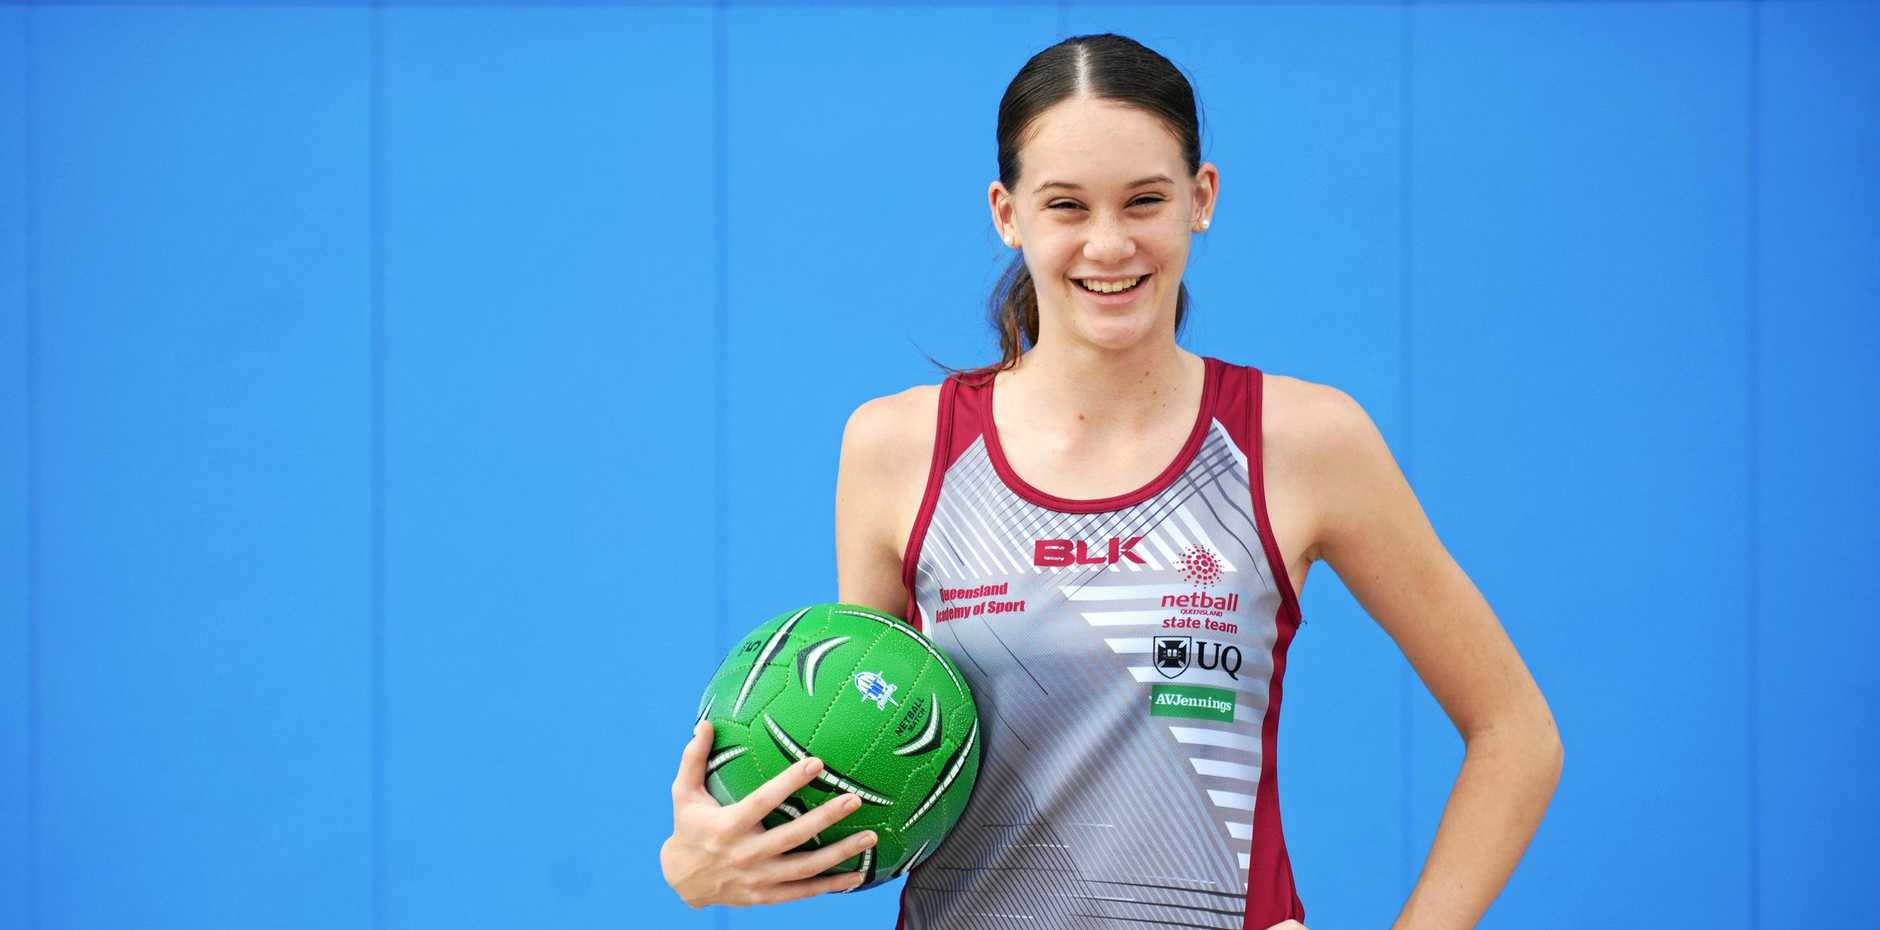 HIGH ACHIEVER: Rockhampton's Isabelle Shearer will represent Queensland at the national under-17 netball championships in Brisbane.